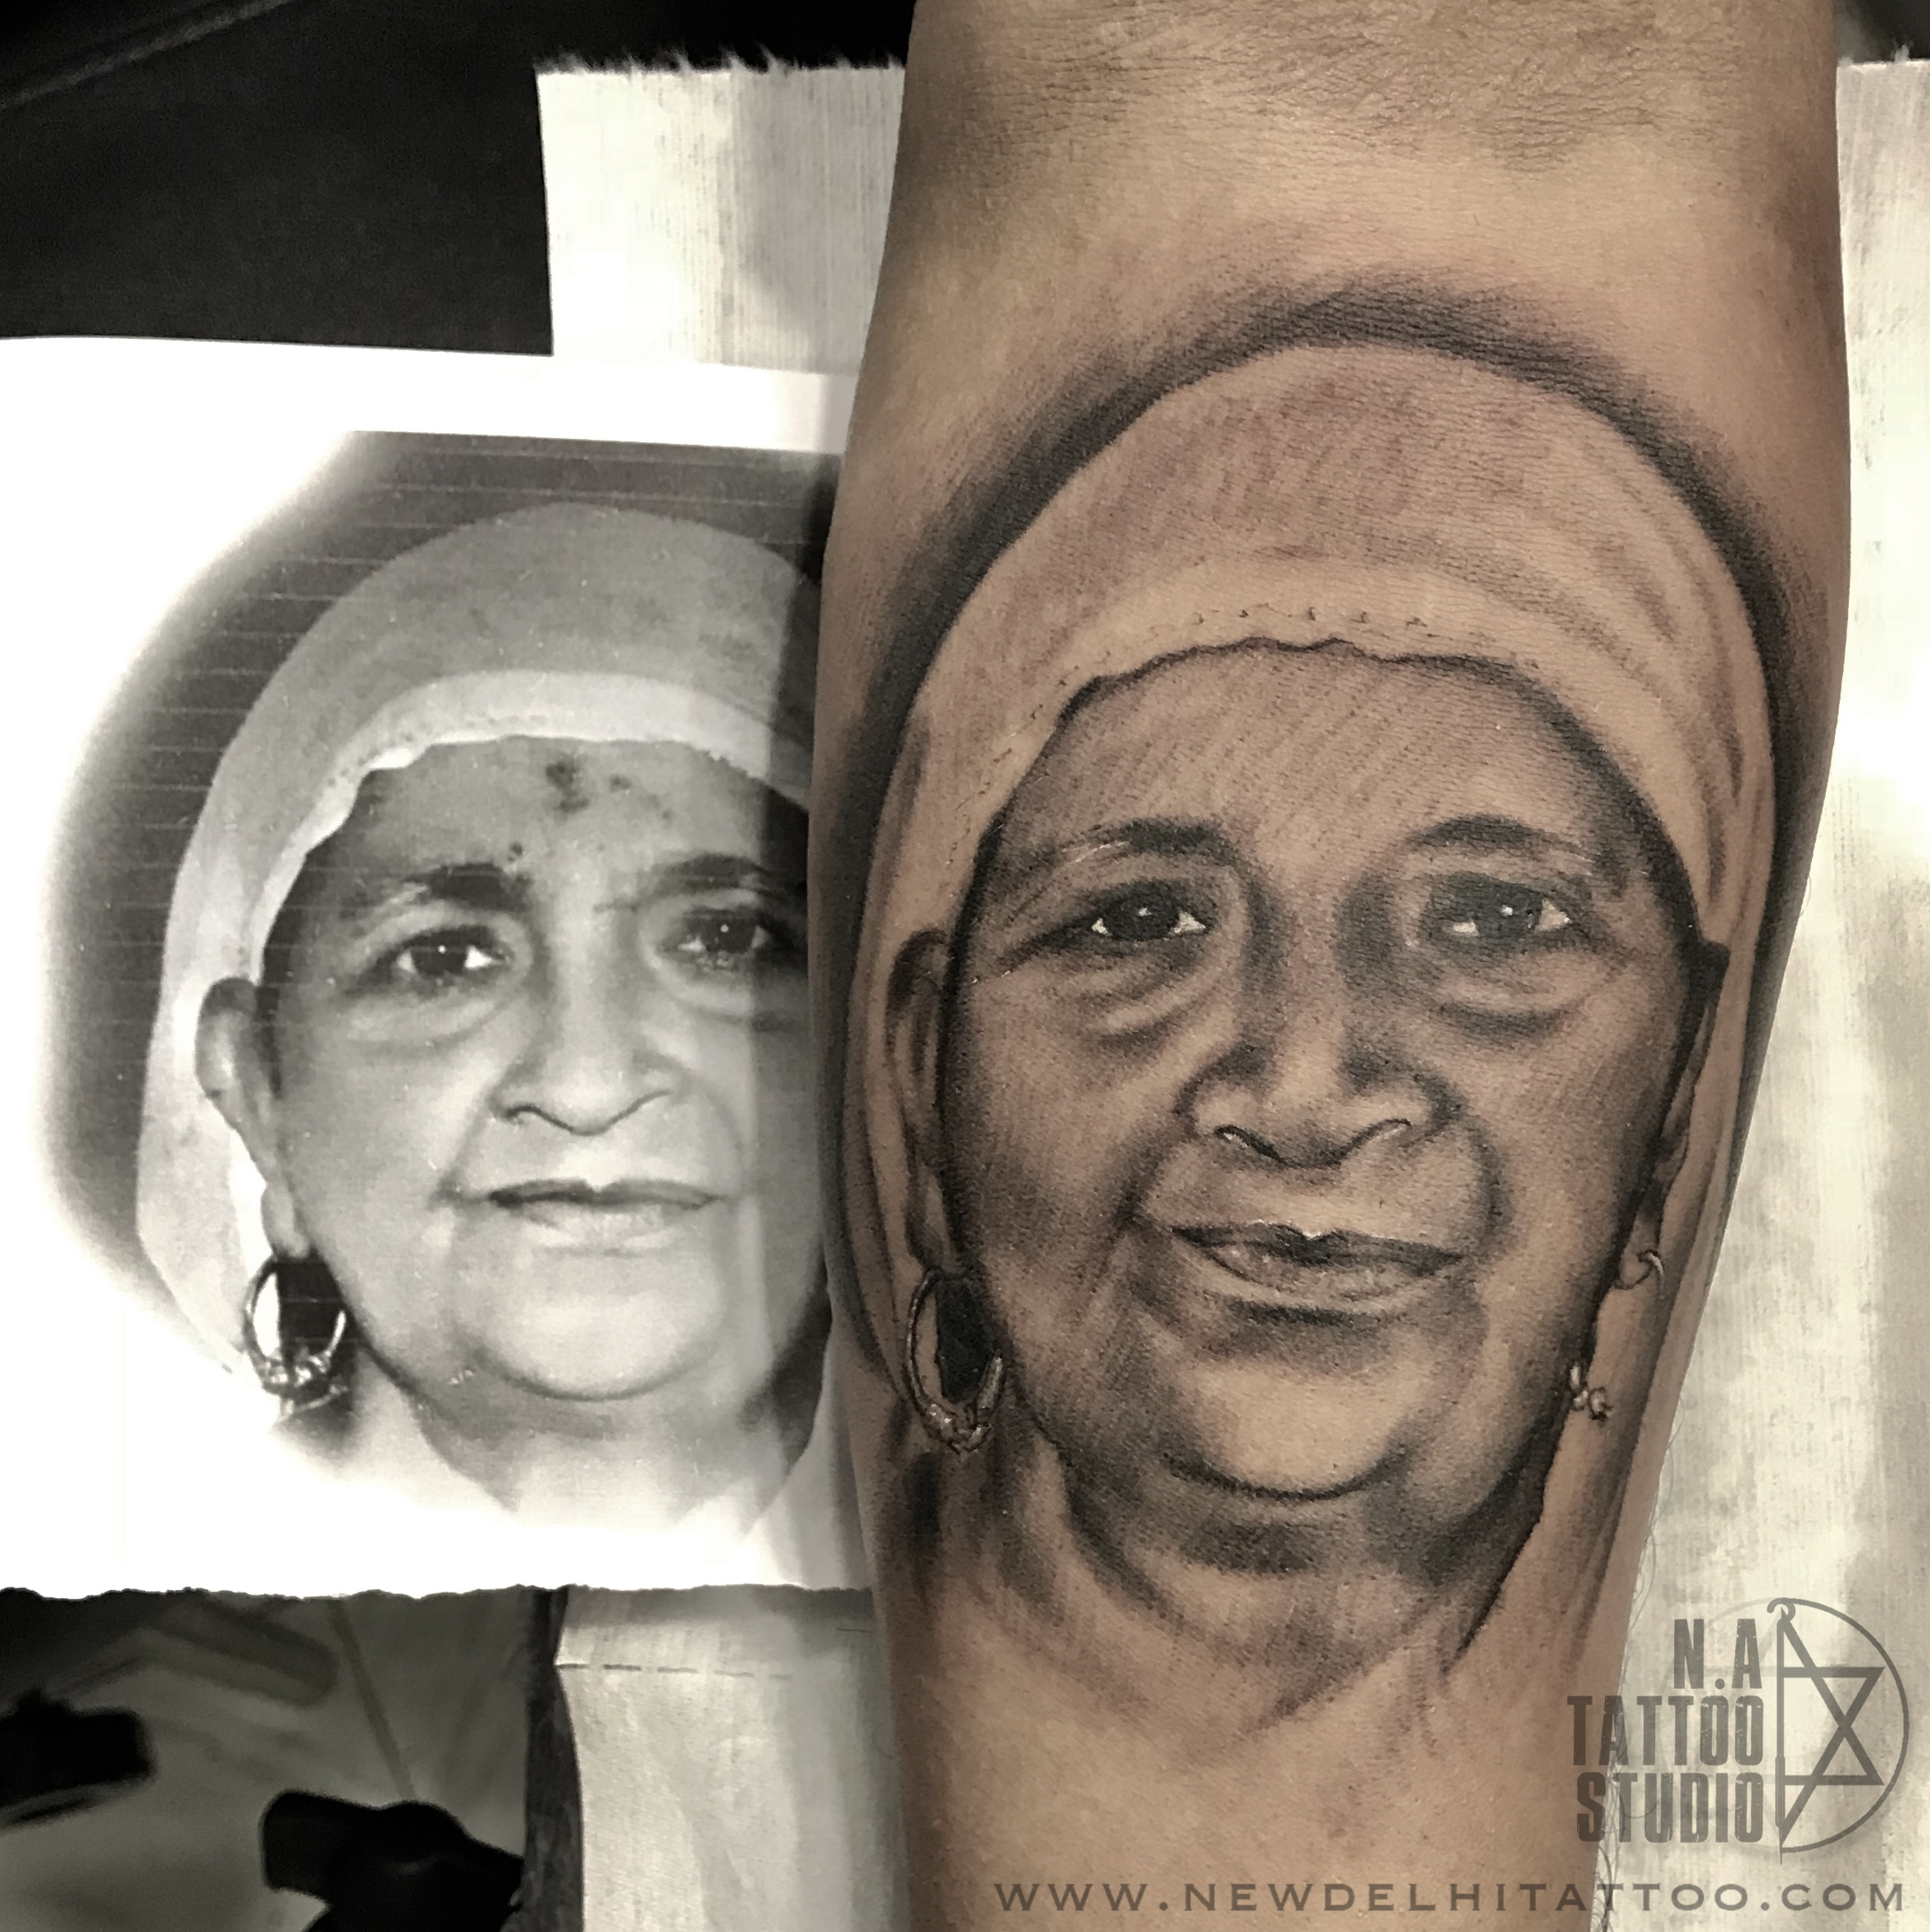 portrait tattoo by natattoostudio